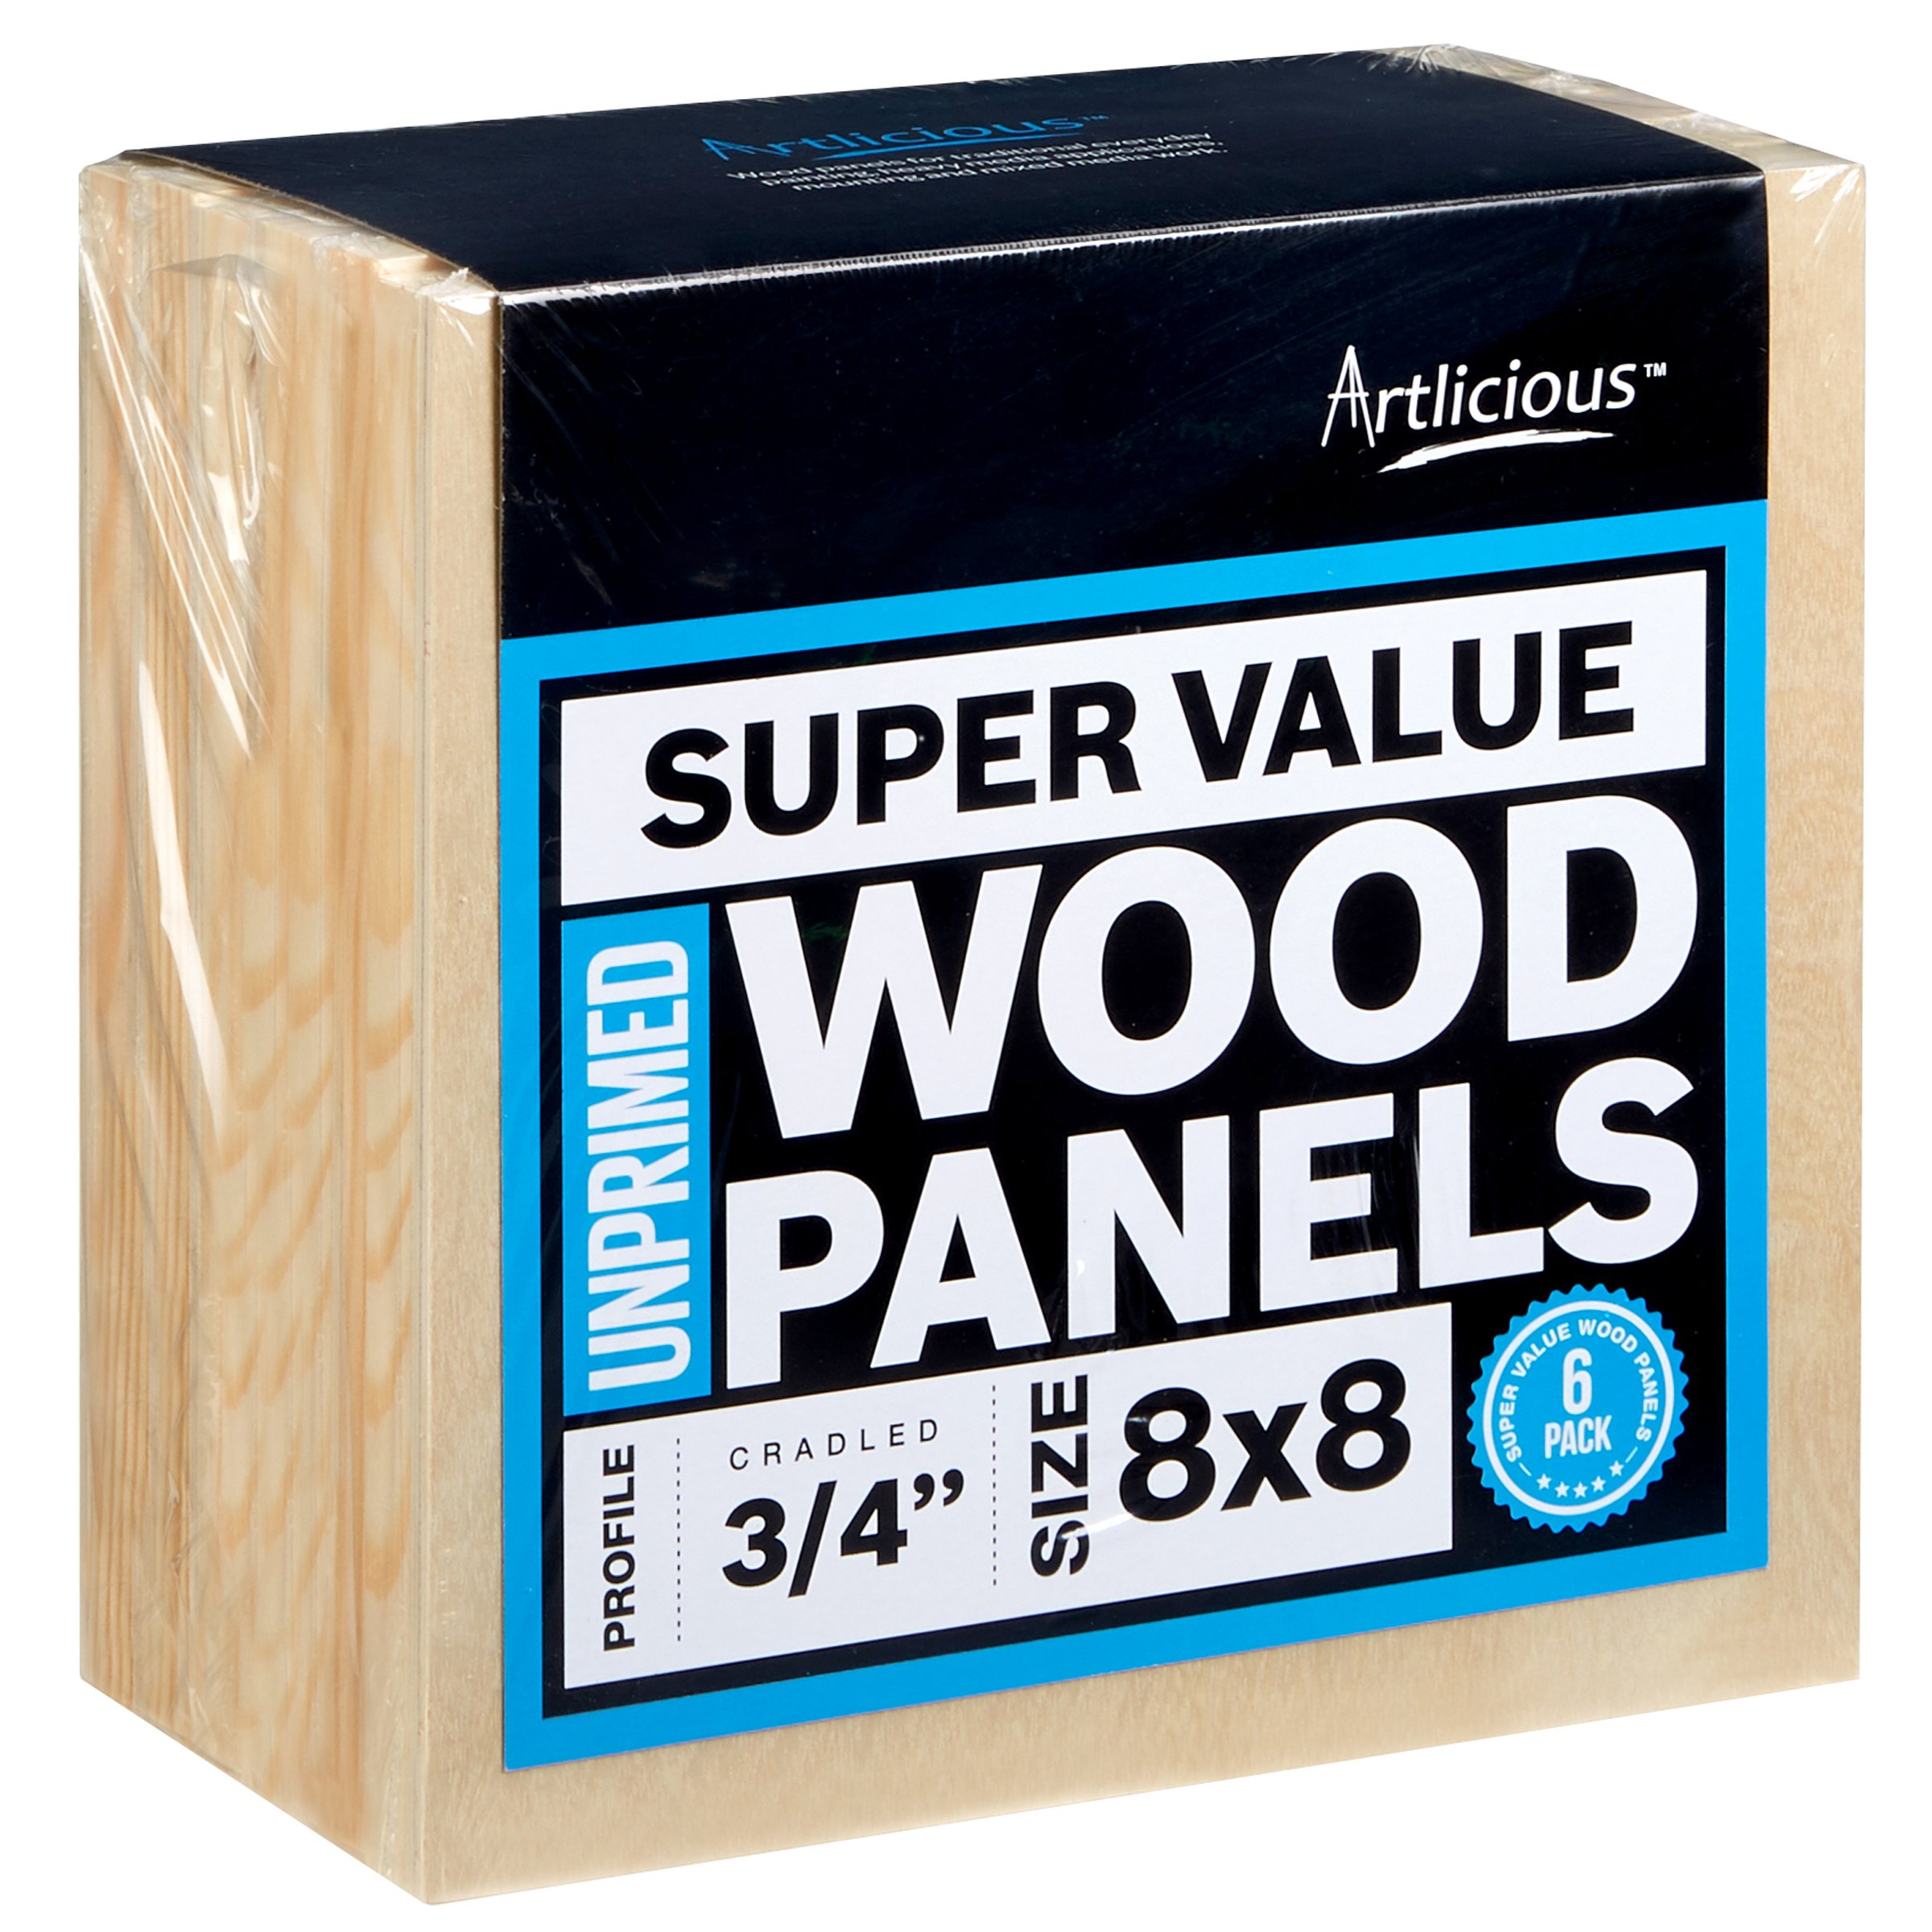 Artlicious - 6 Super Value Wood Panel Boards - Great Alternative to Canvas Panels, Stretched Canvas & Canvas Rolls (8x8, Standard Profile)